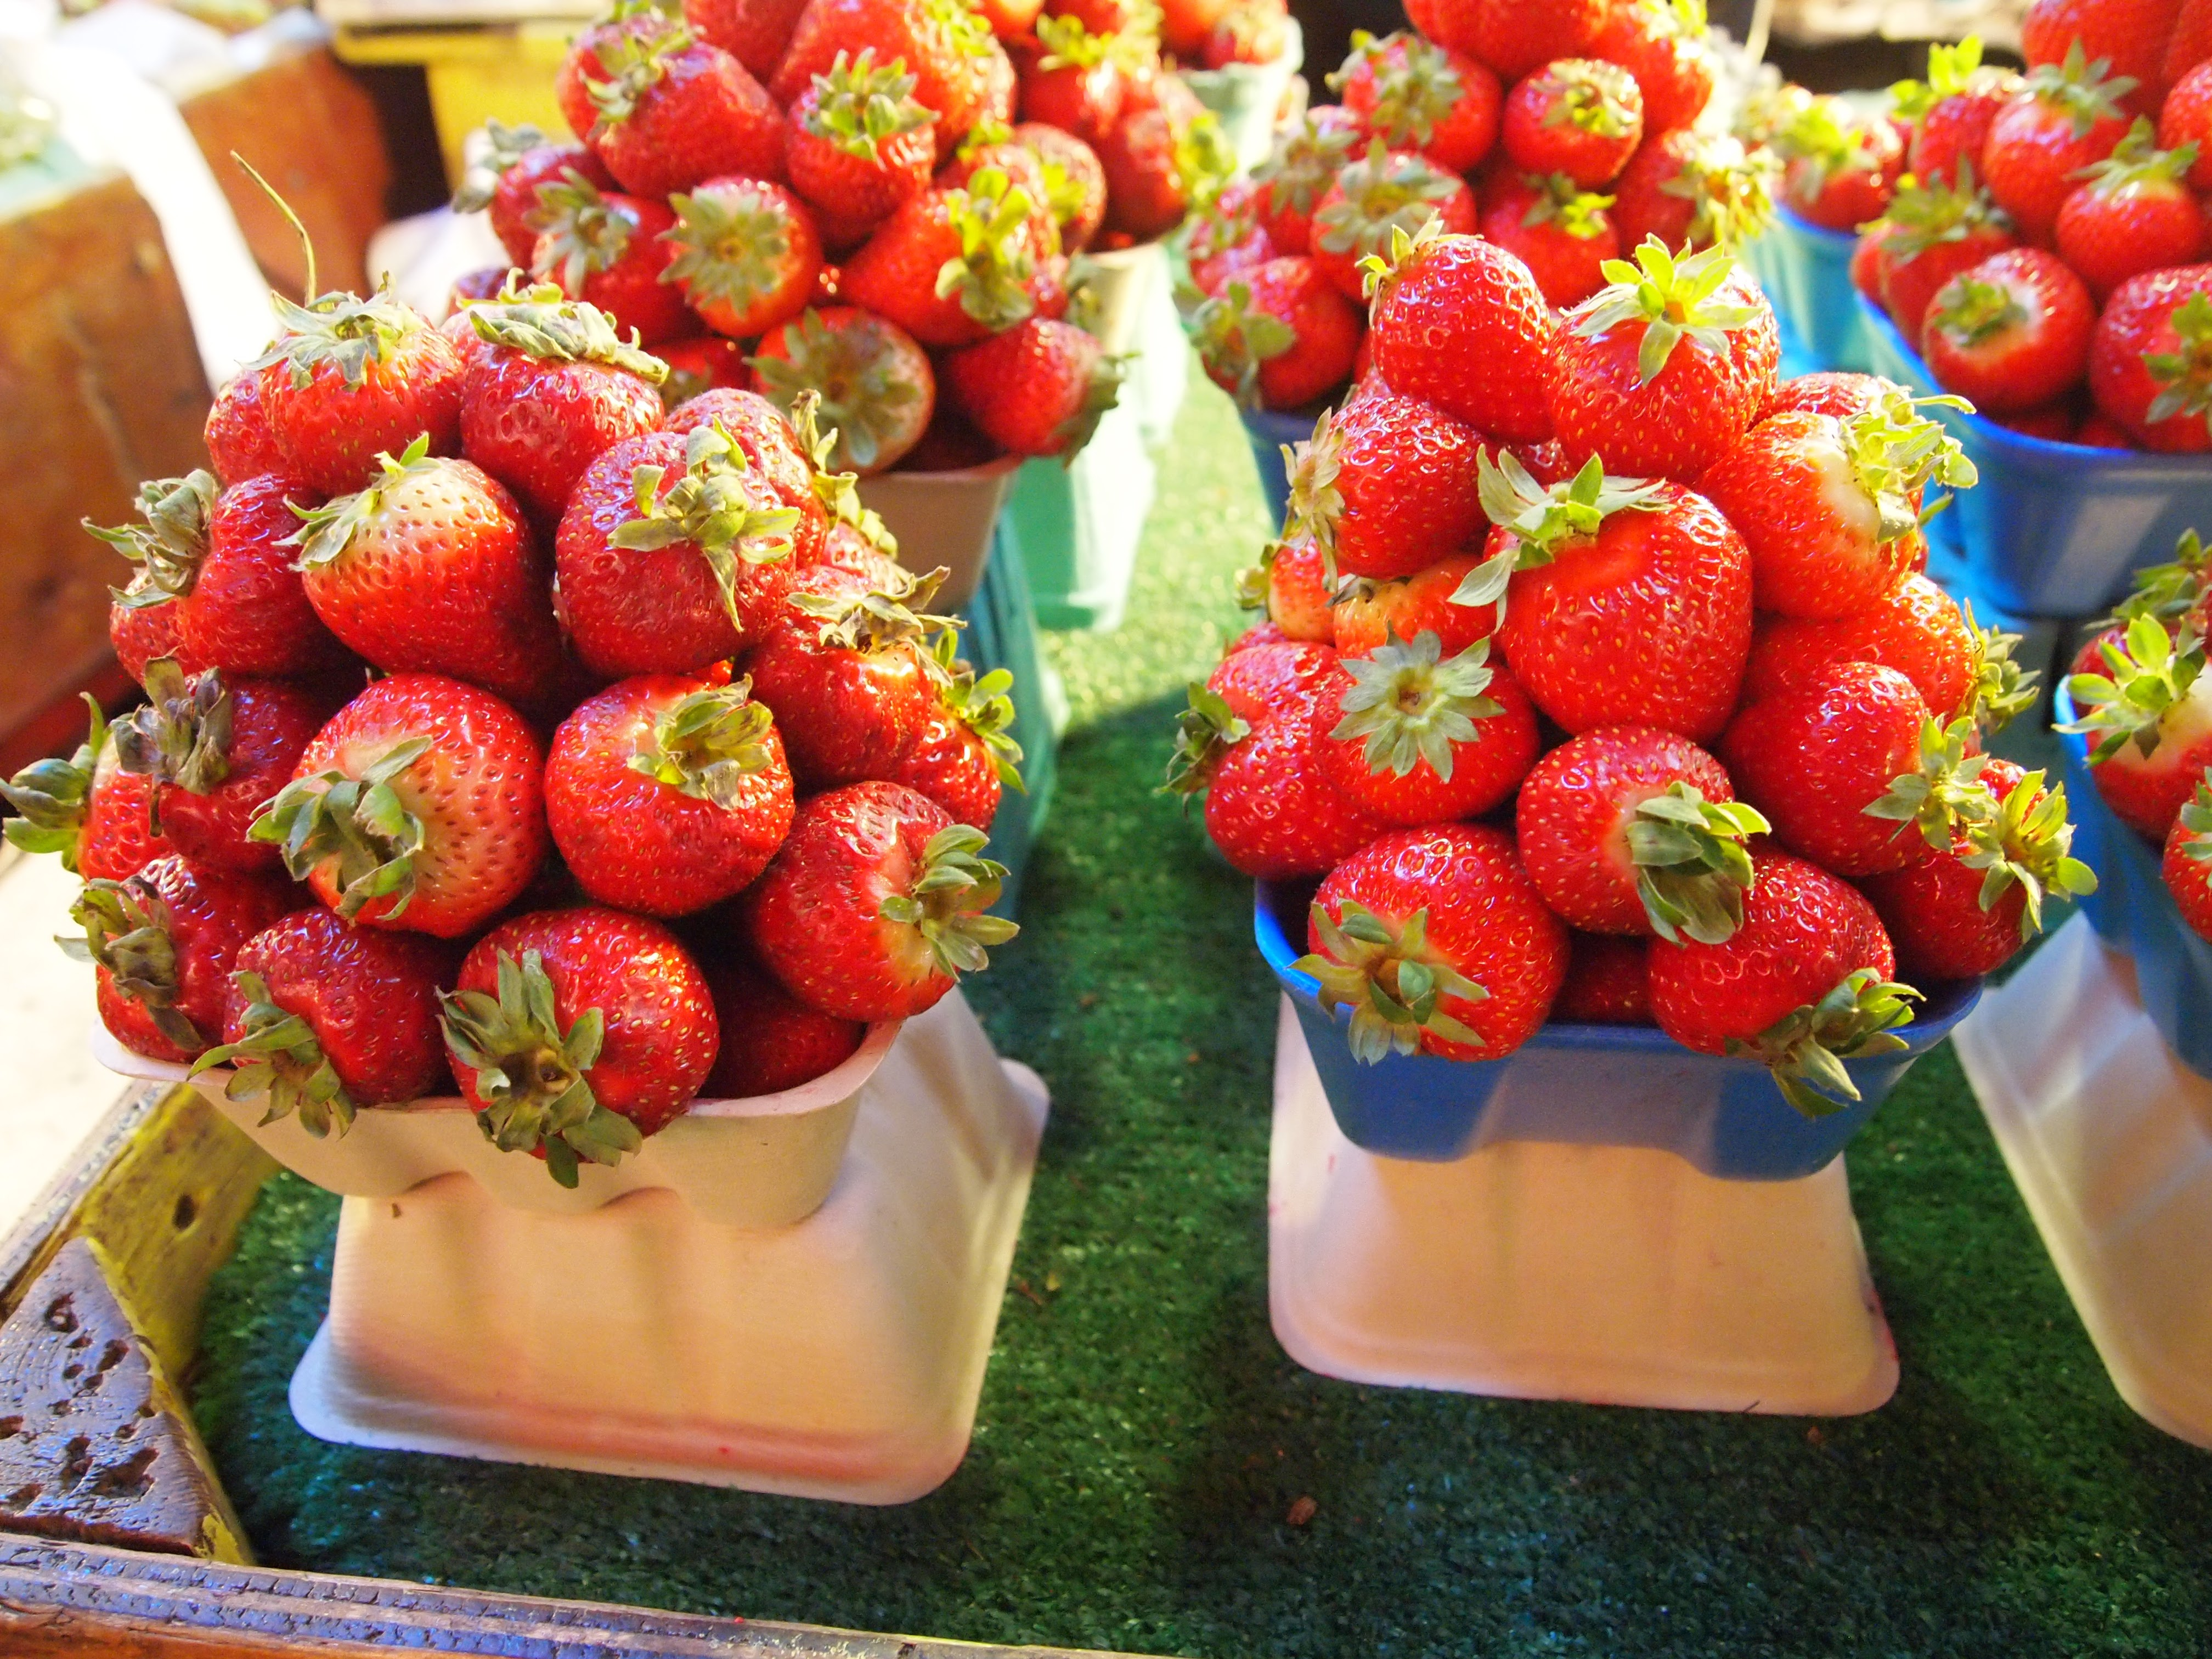 Piles of Strawberries from Granville Island Public Market